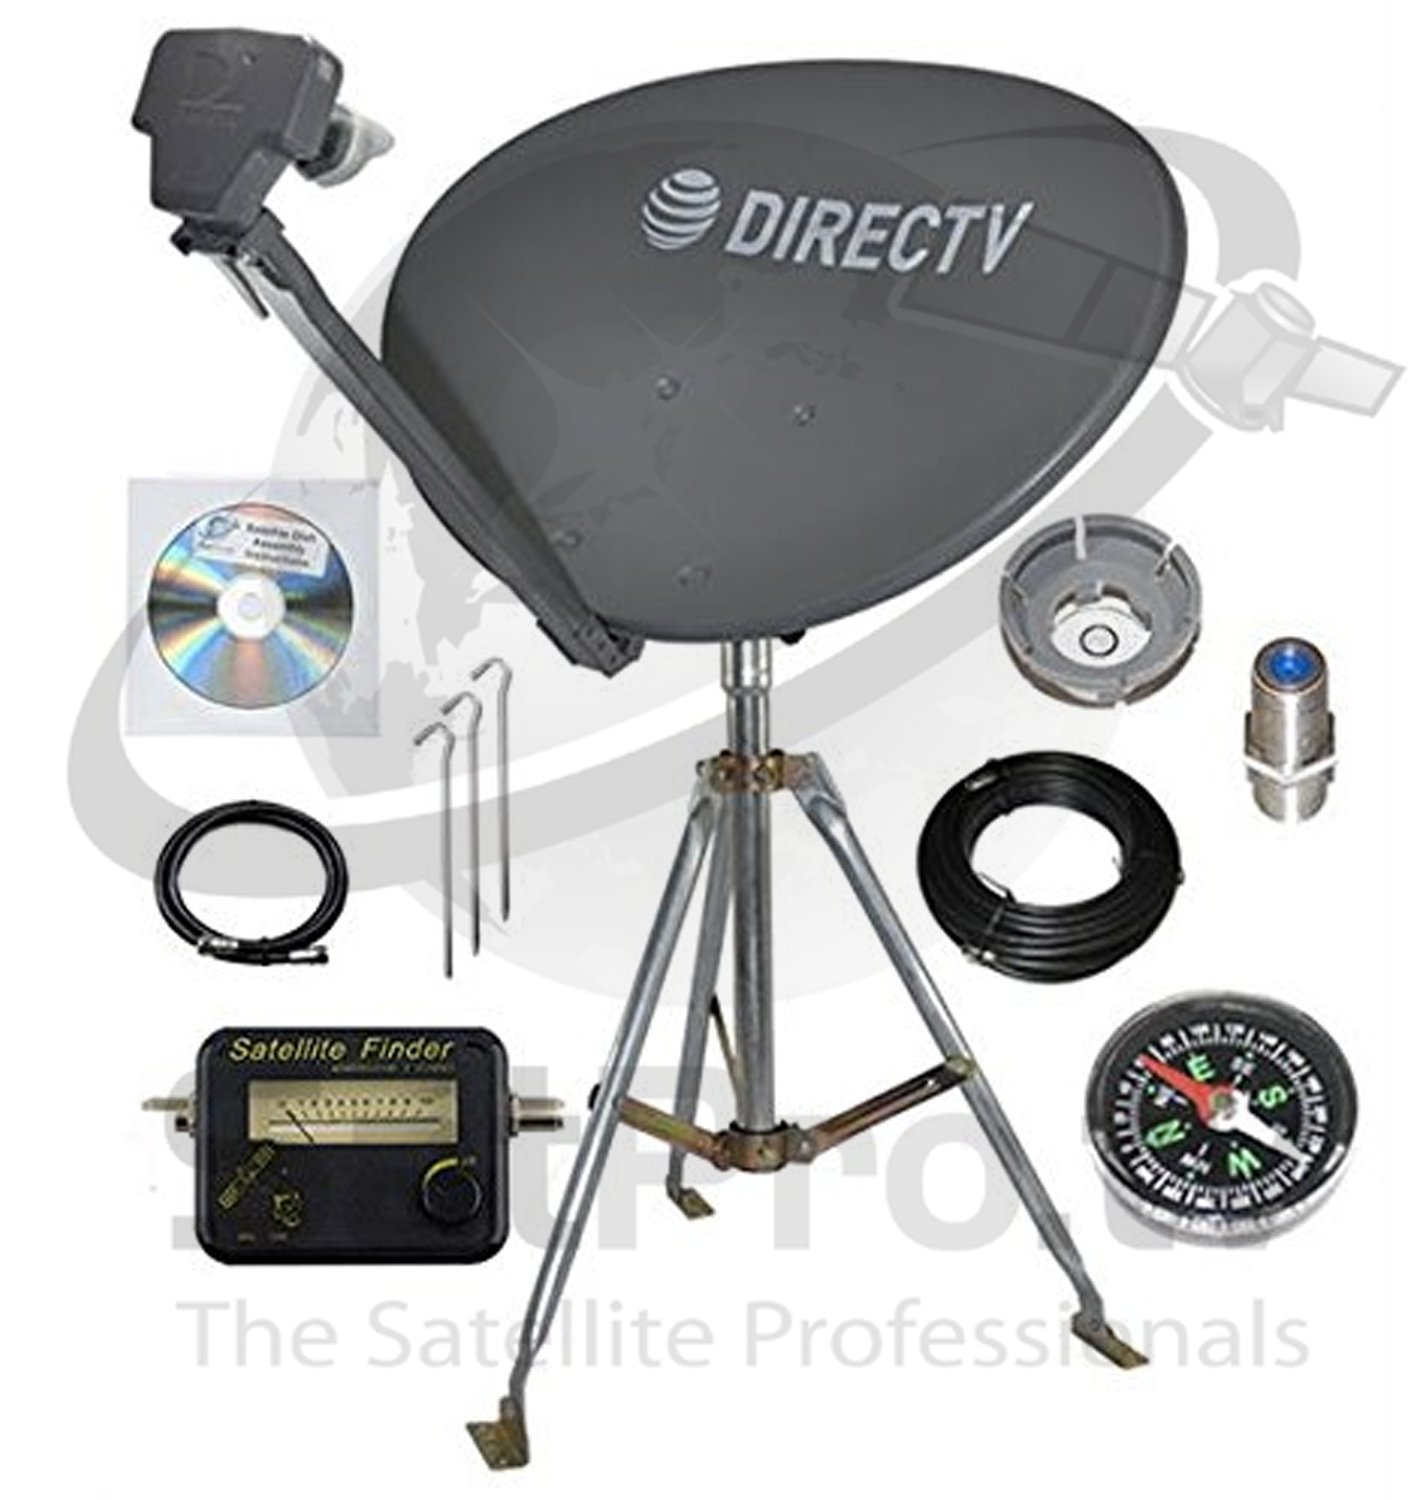 H25 HR34 DIRECTV SWM3 Complete Portable Camping RV Tailgate KIT Slimline Dish SL3 with 3FT Tripod /& COAXIAL RG6 /& HDMI Cable for GENIES /& H24 HR44 H44